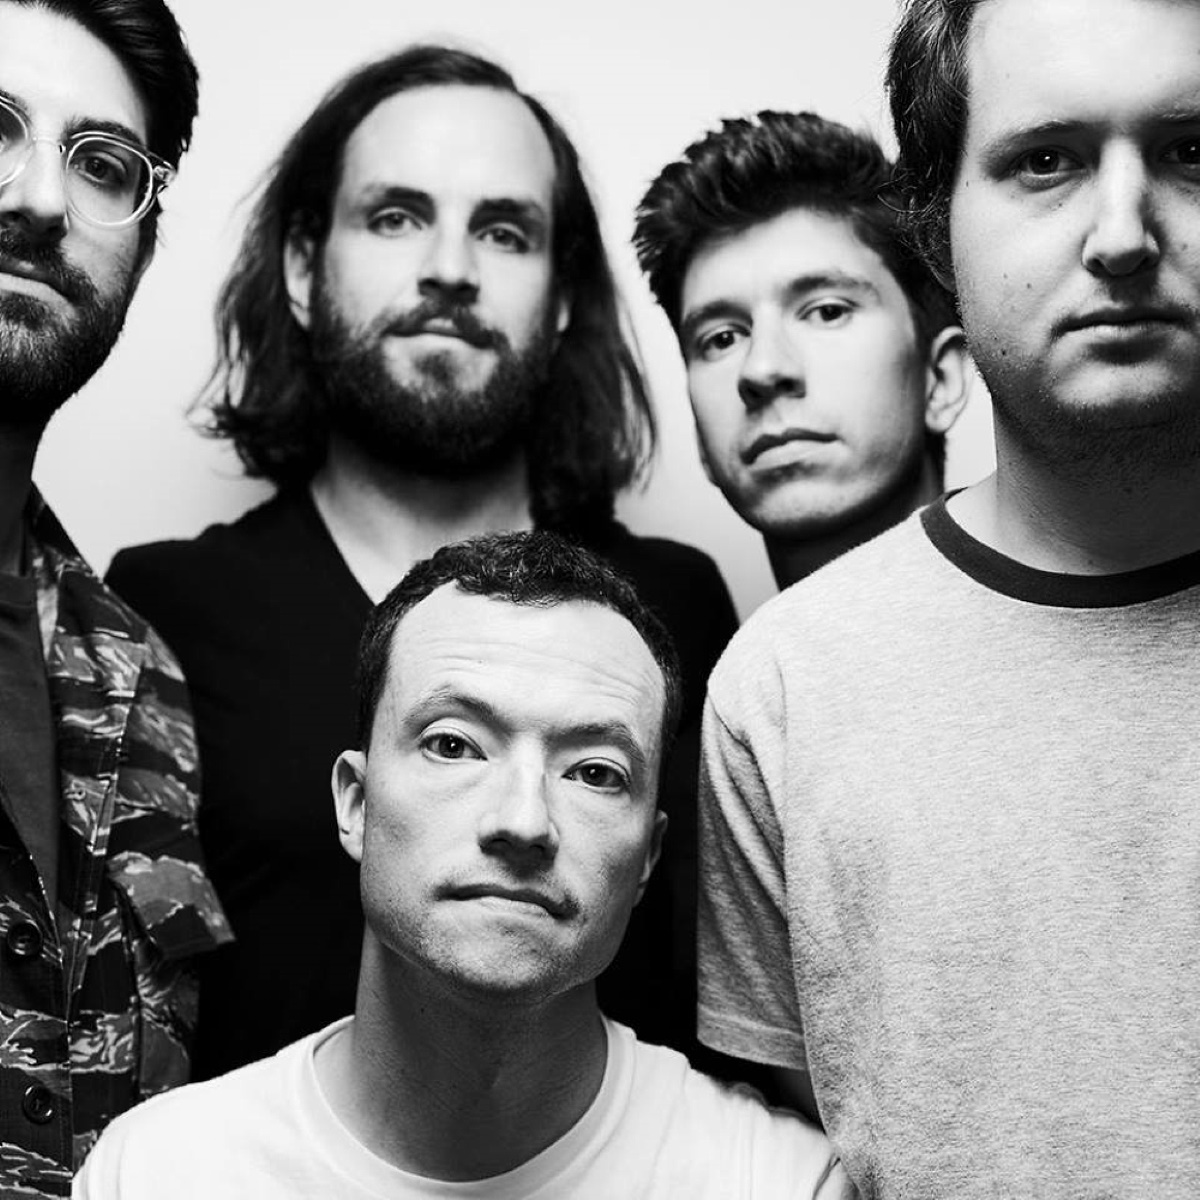 TOUCHE AMORE - Deflector - new song - IDIOTEQ.com